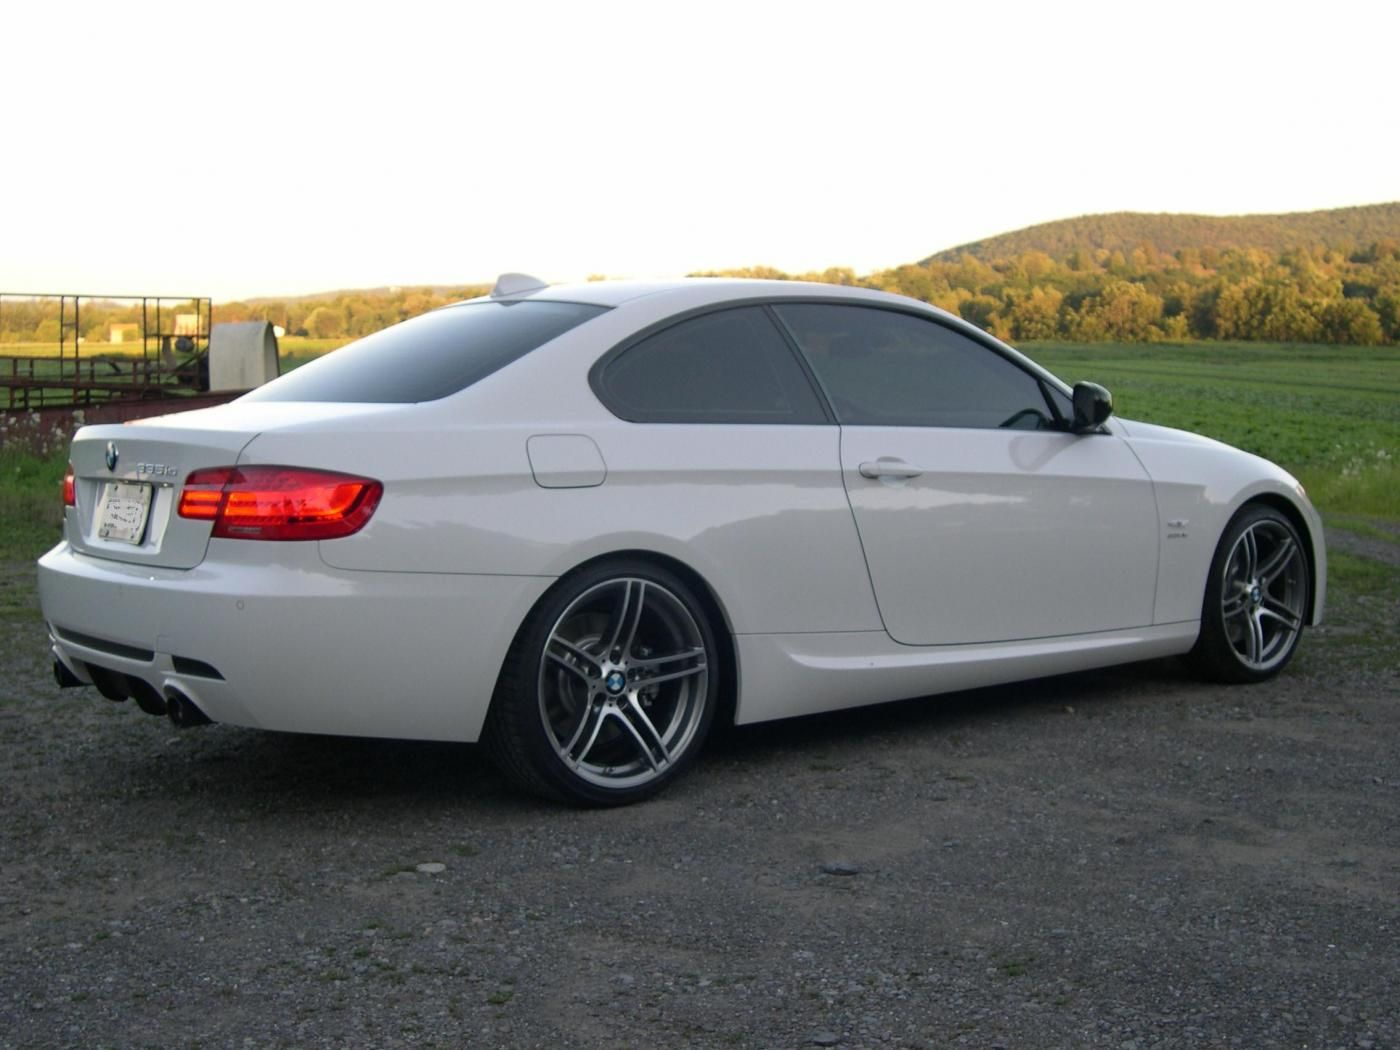 BMW 335i Coupe  Cars  Pinterest  BMW Coupe and Cars